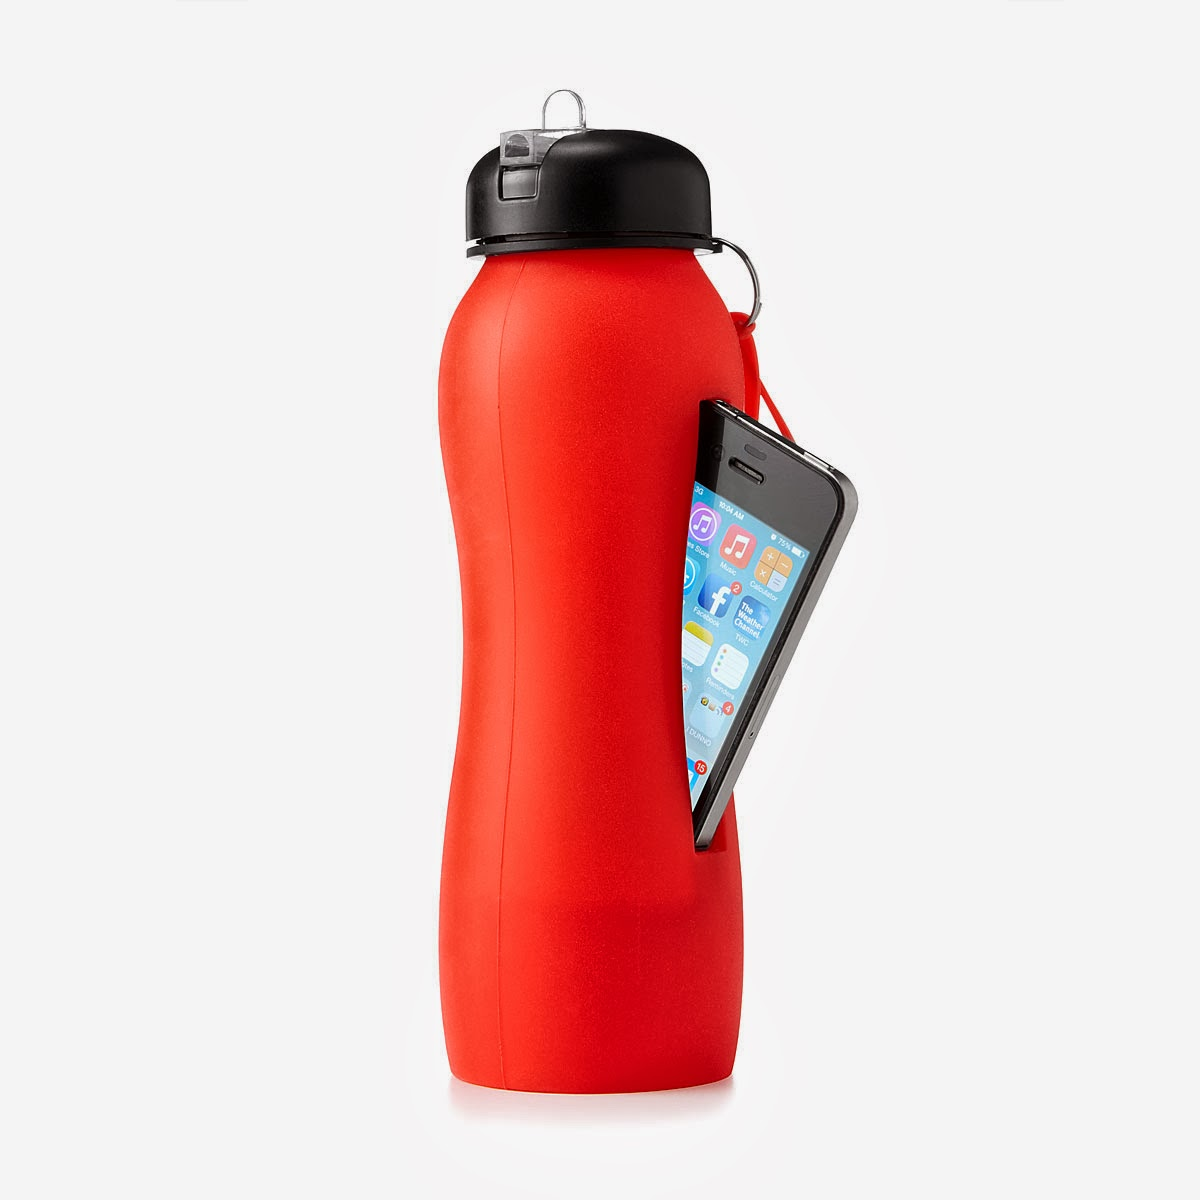 15 Innovative Water Bottles And Creative Water Bottle Designs